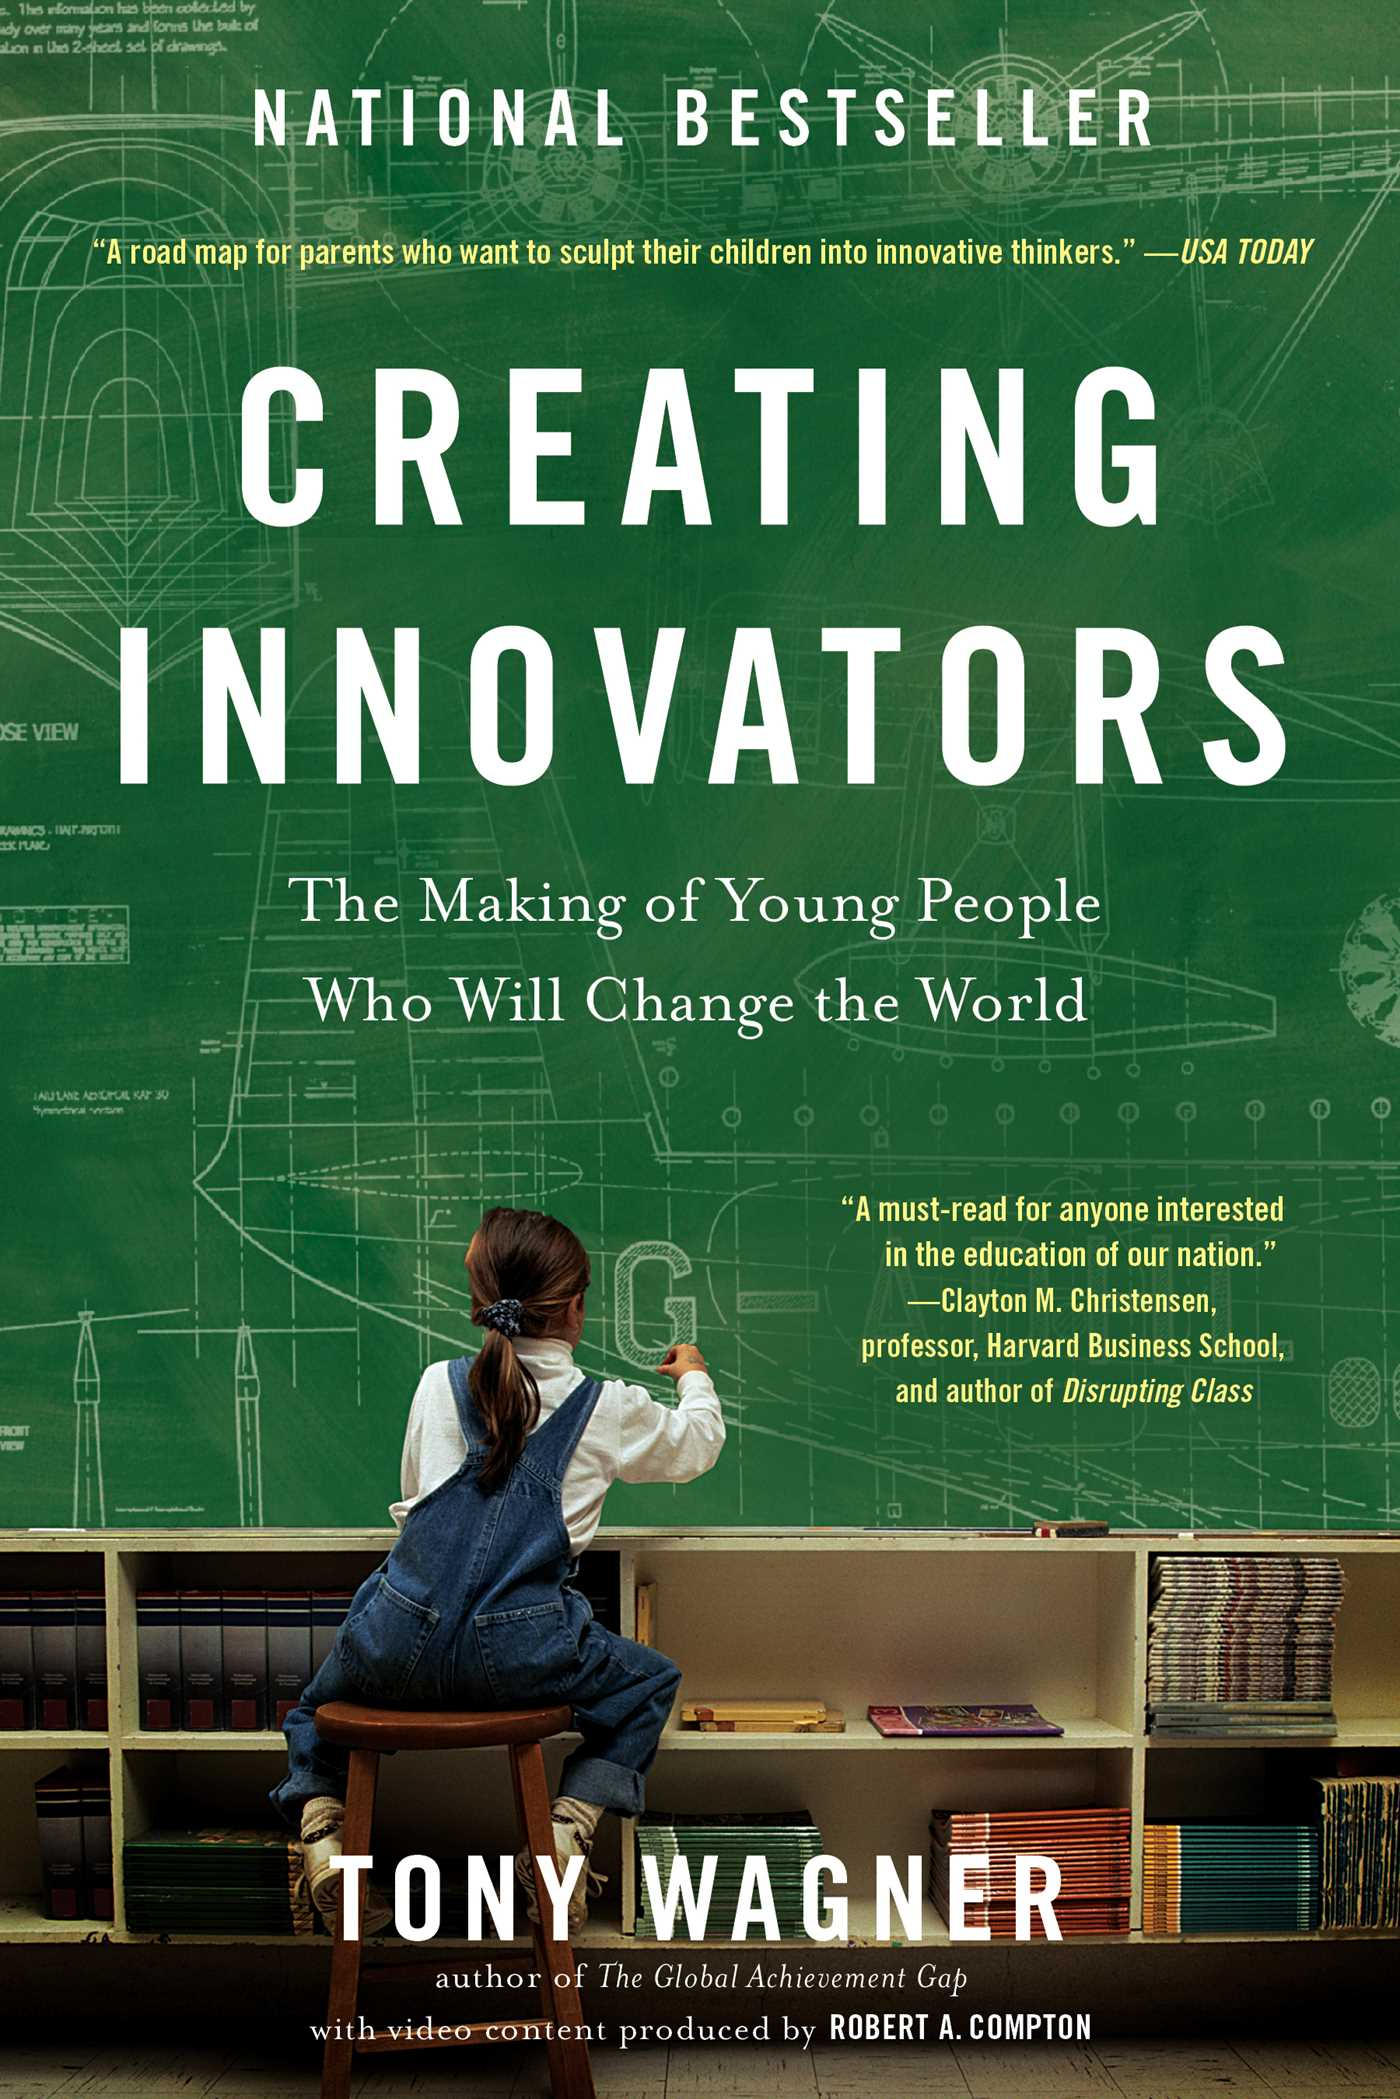 Creating-innovators-9781451611526_hr